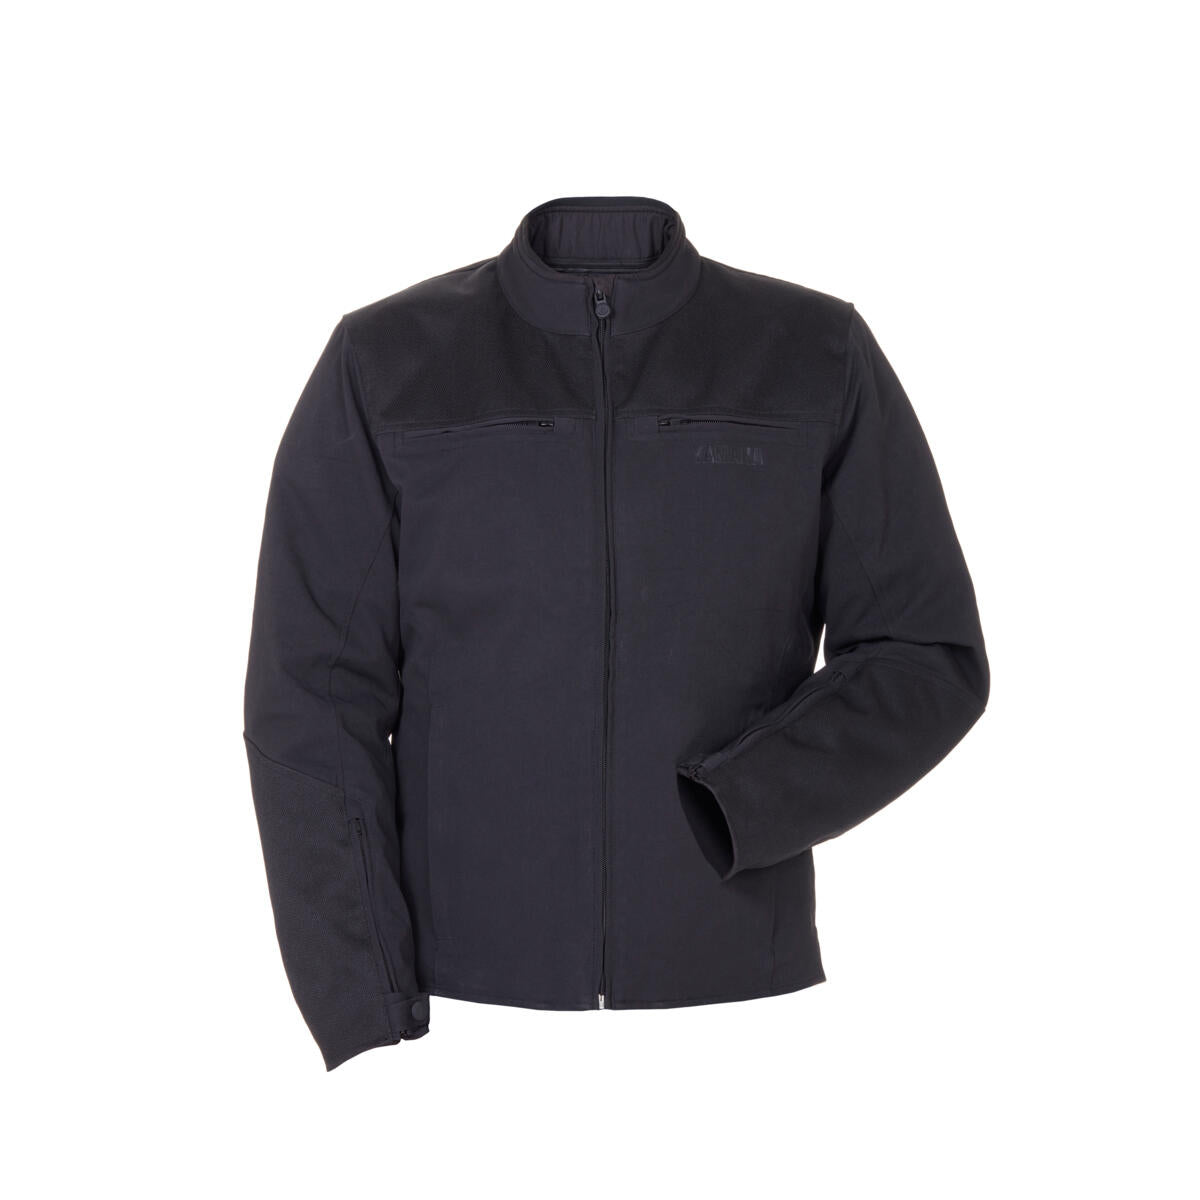 Men's Urban Riding Jacket - Short